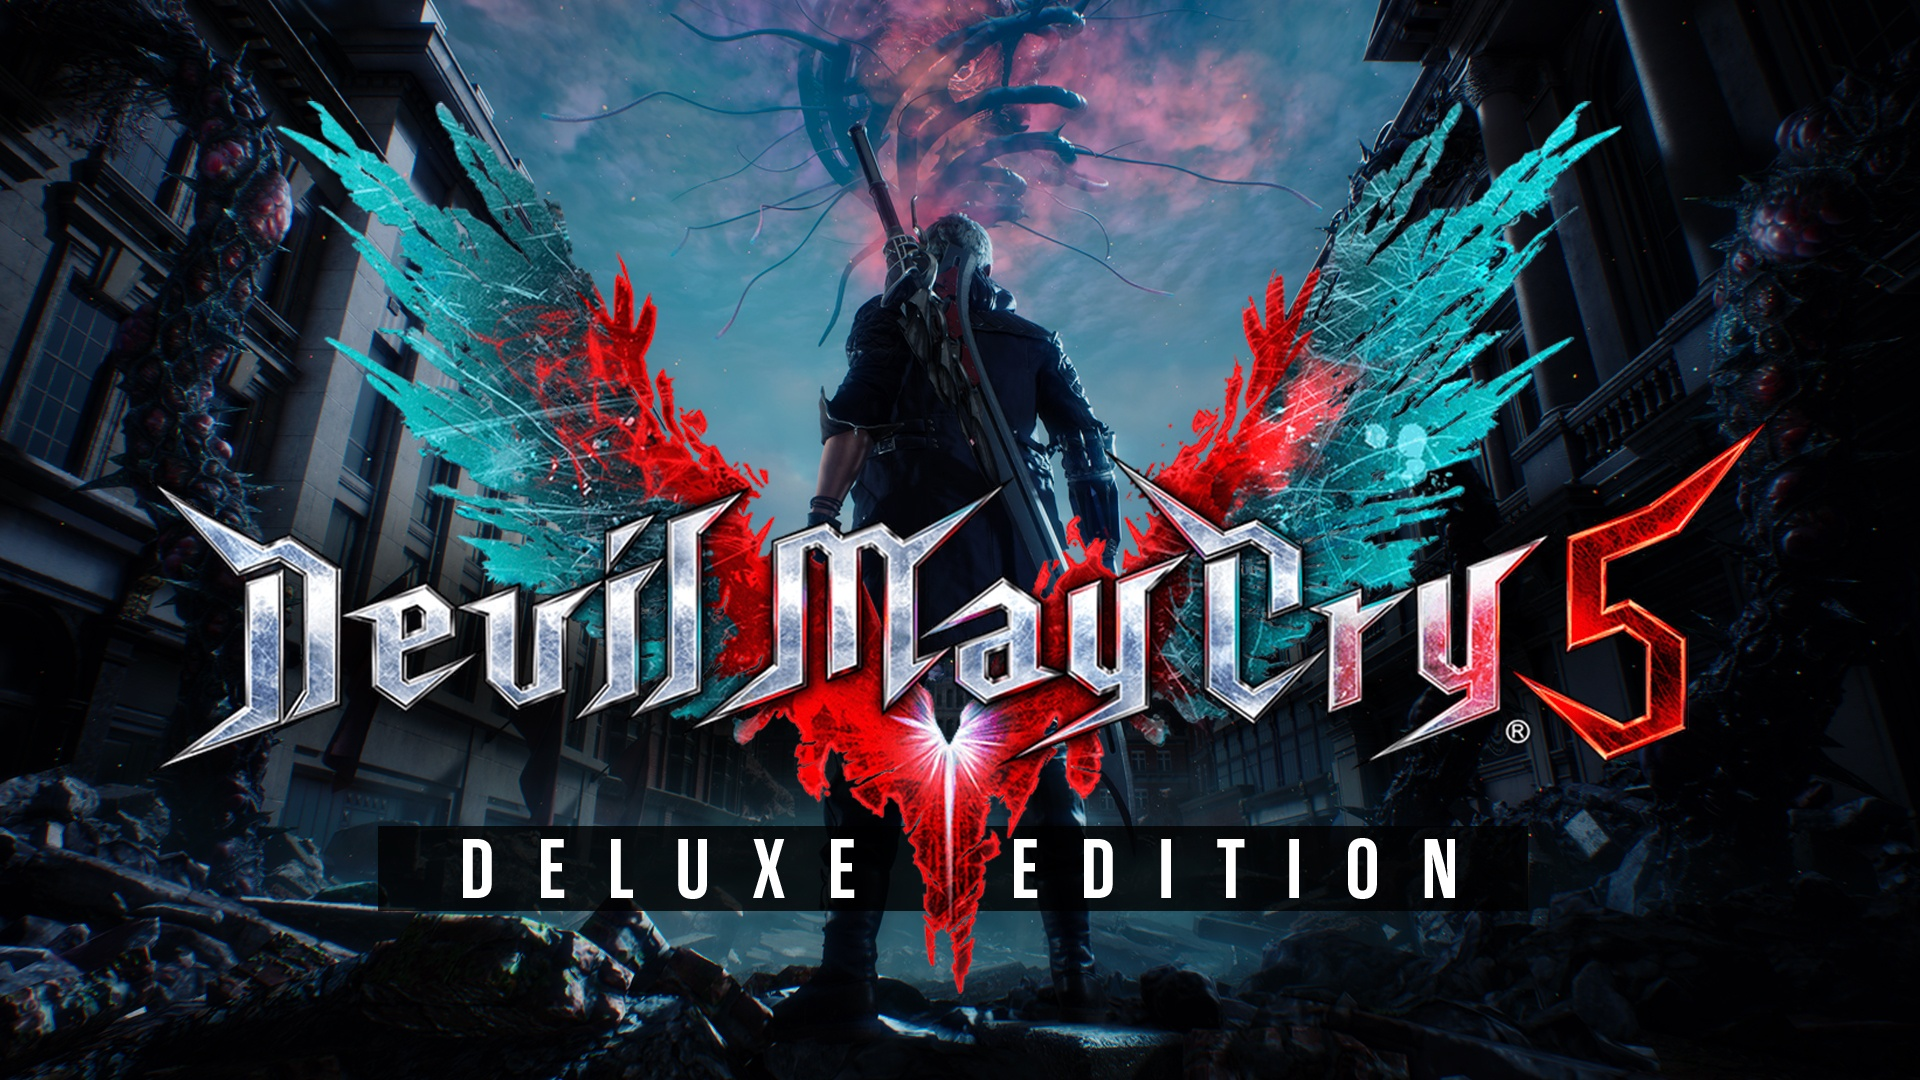 https://www.humblebundle.com/store/devil-may-cry-5-deluxe-edition?partner=sdgtent